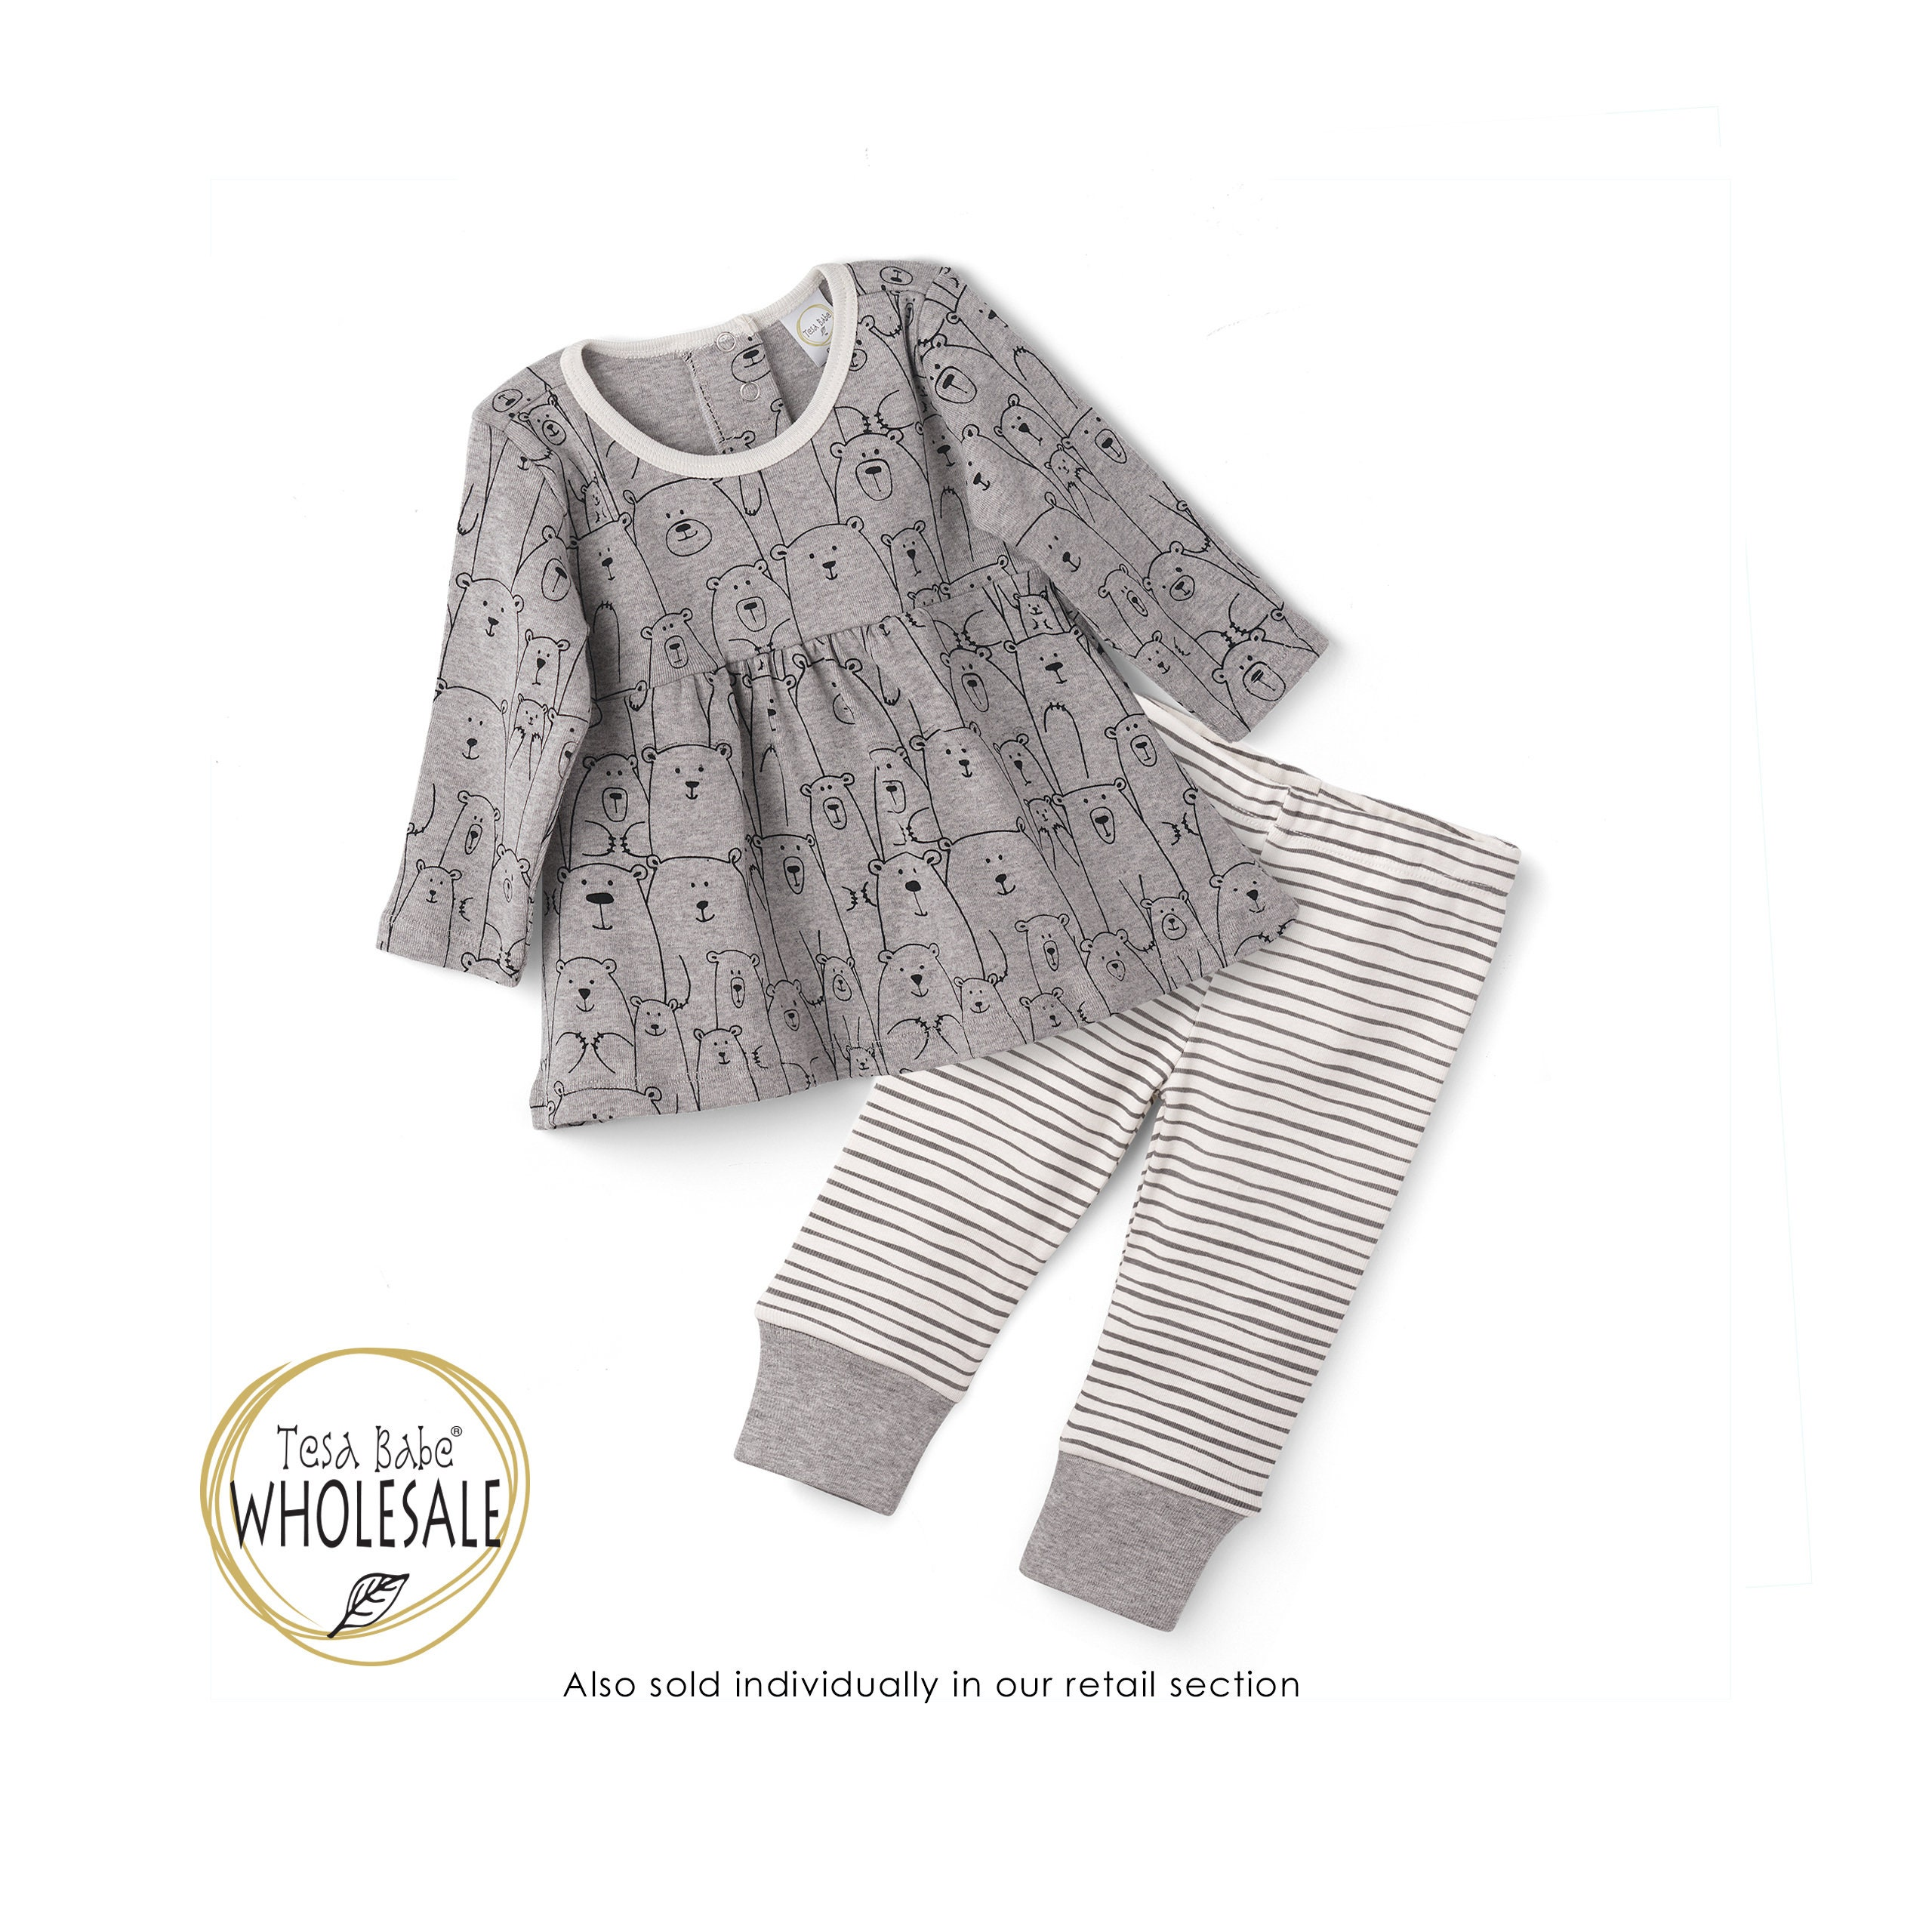 WHOLESALE Baby Outfit, Baby Girl Bear Top Bottom Long Sleeve Outfit ...